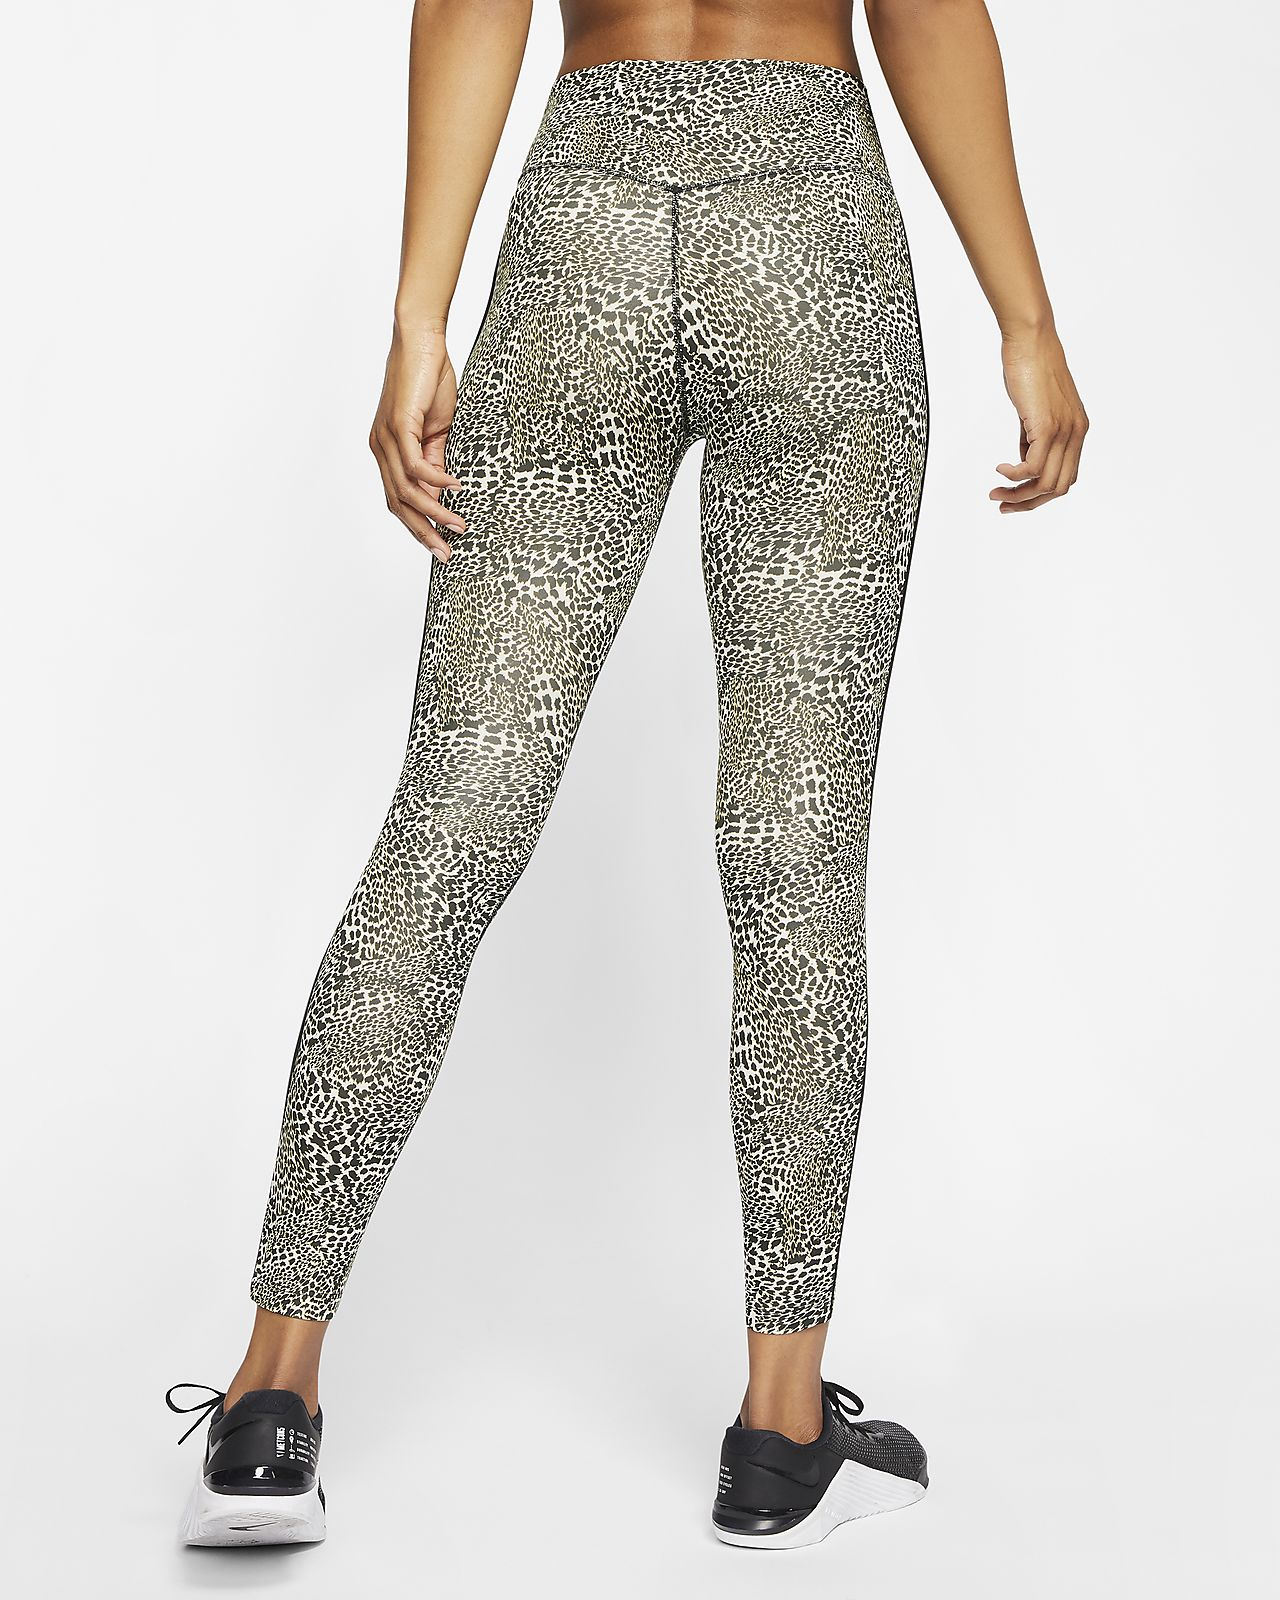 Nike One Women's Leopard Mid Rise 78 Leggings